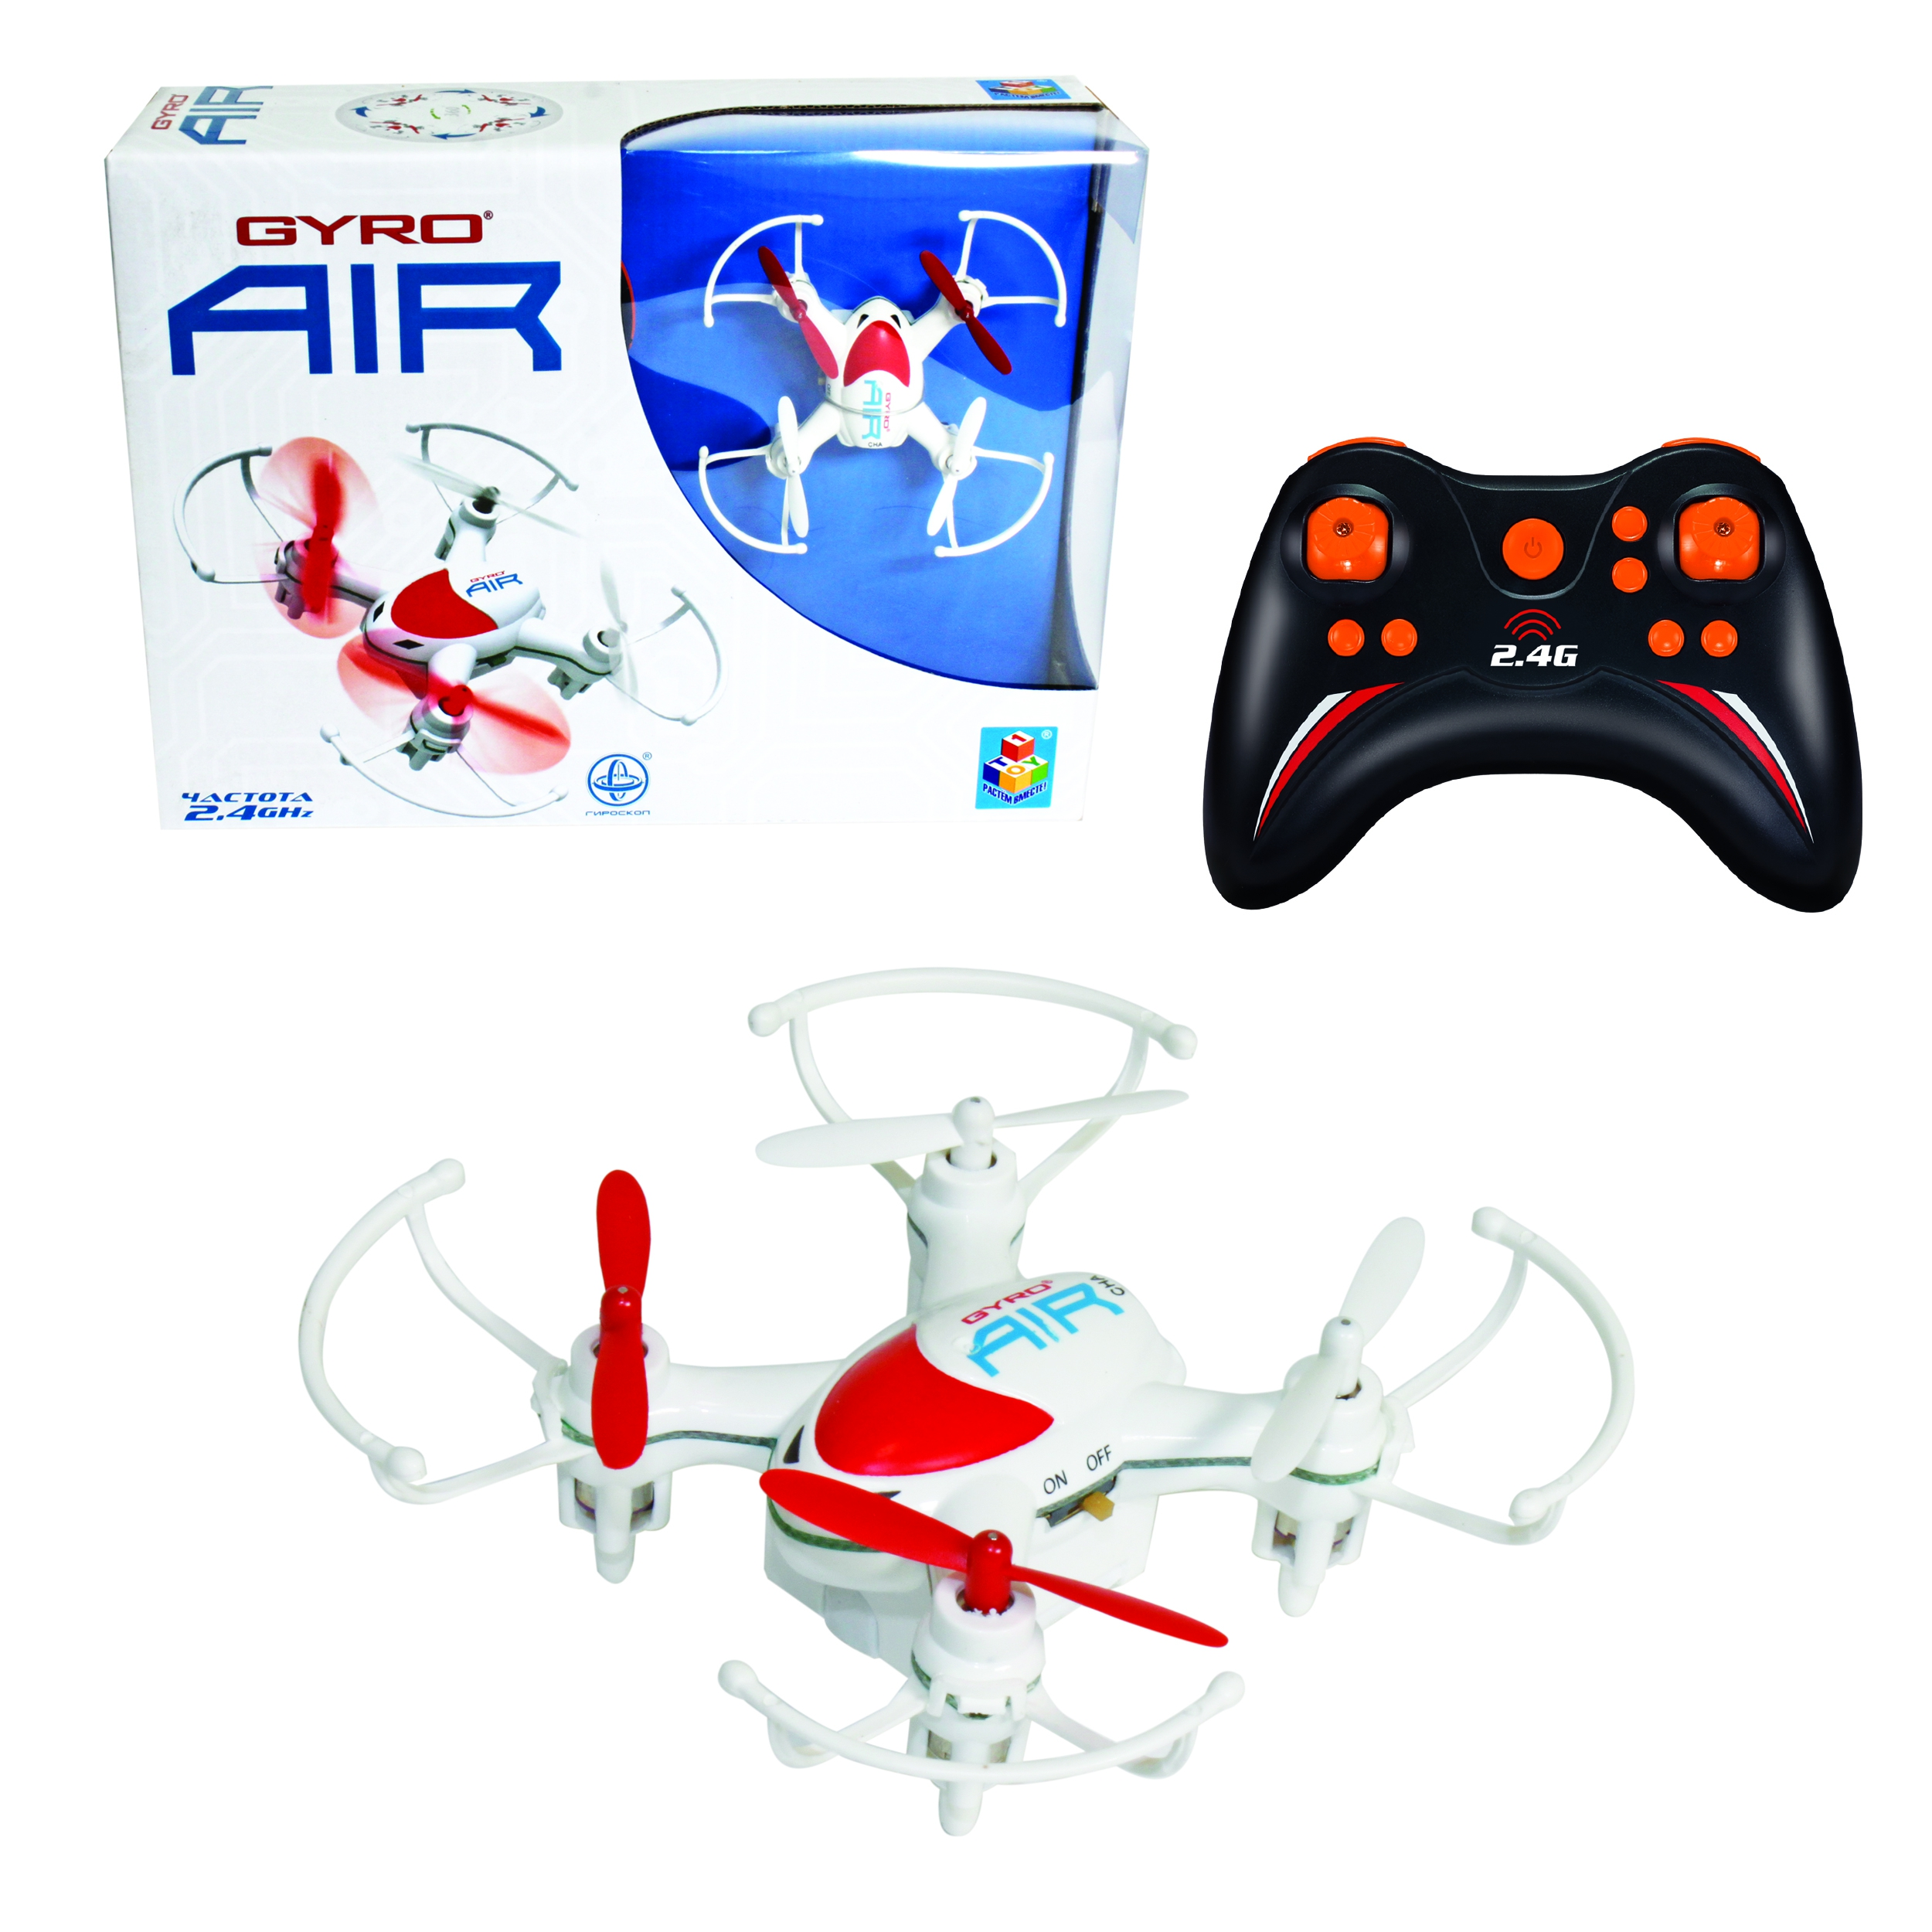 Квадрокоптеры 1toy GYRO-Air цена